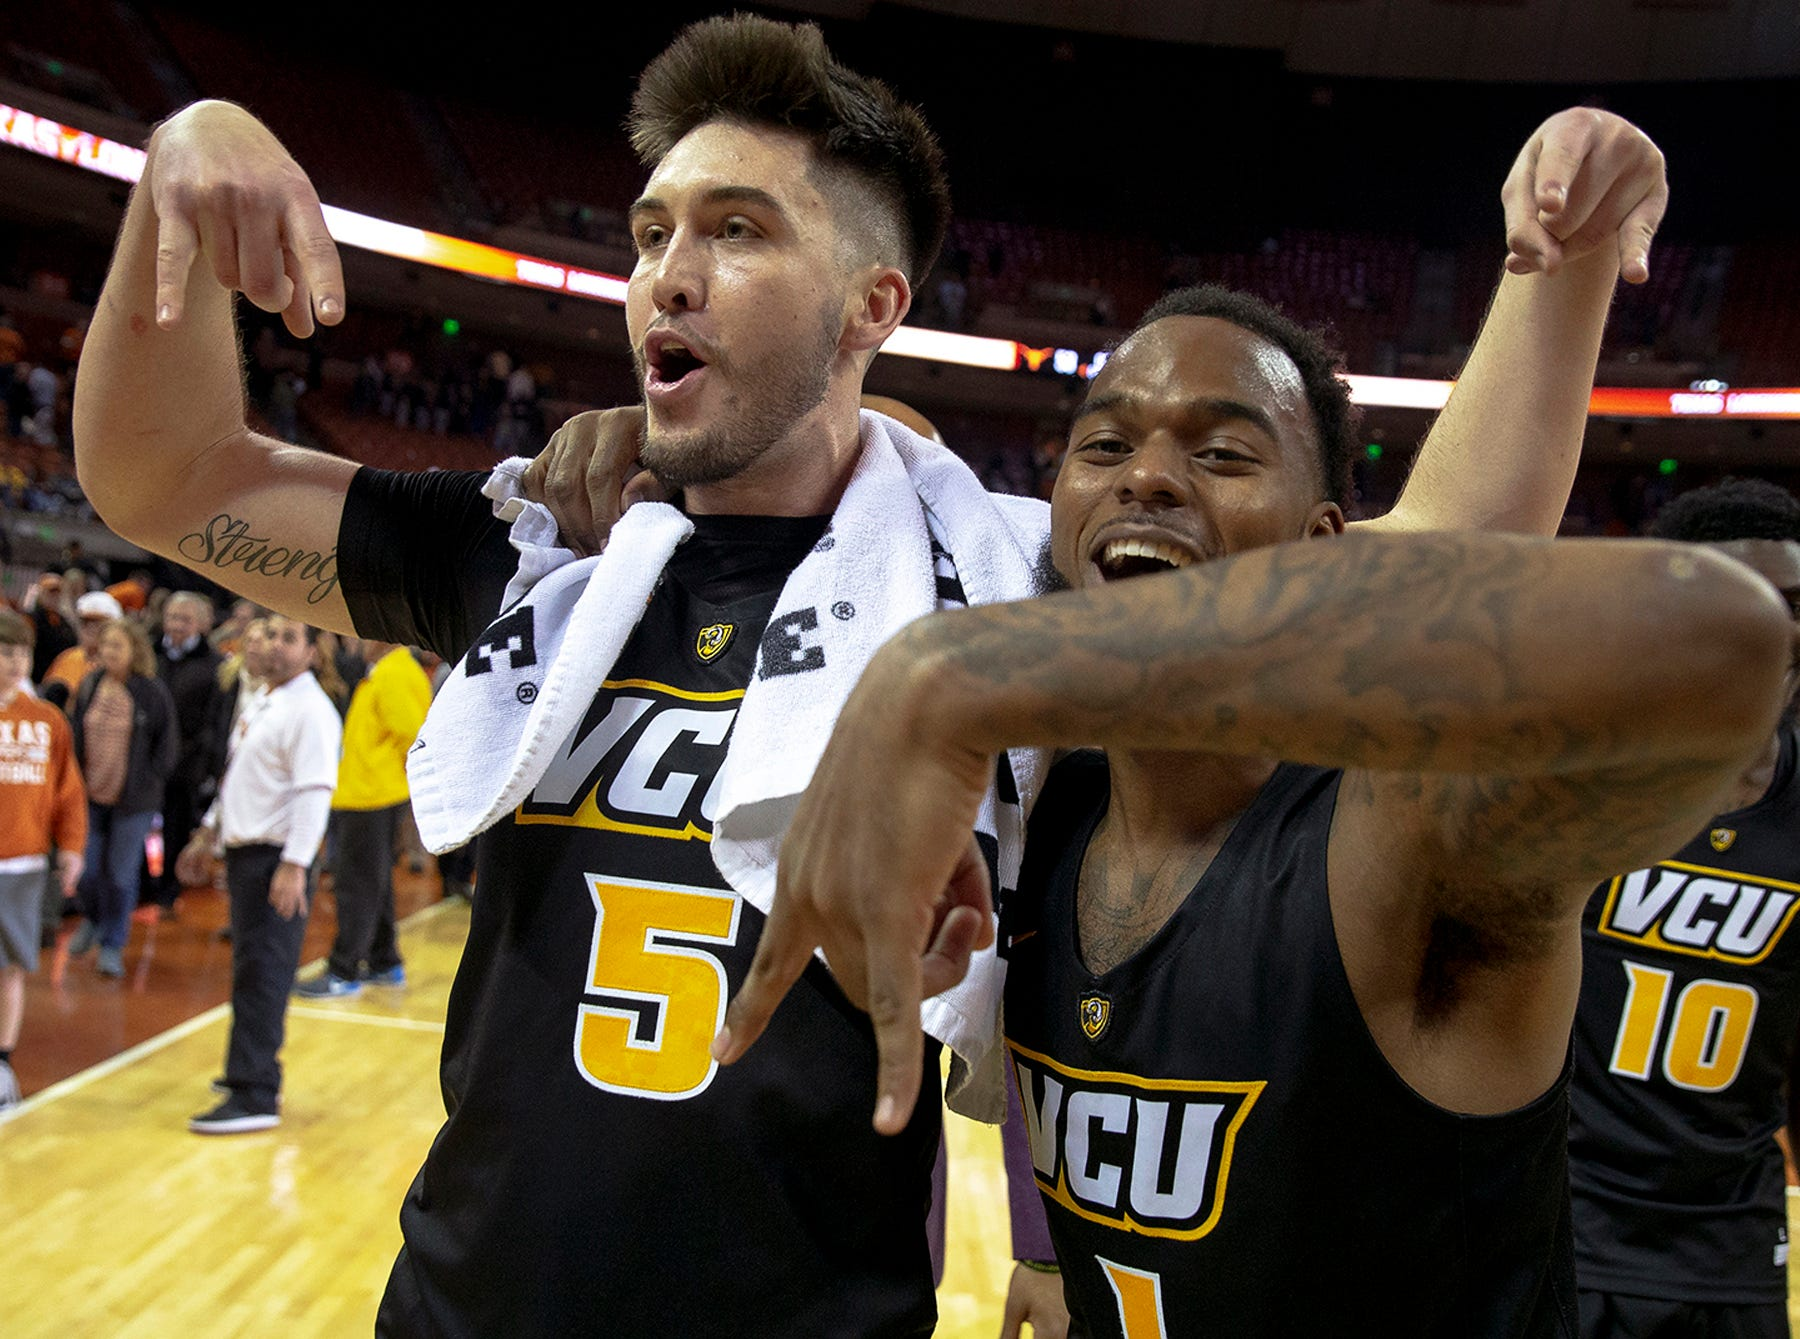 VCU (25-7), No. 8 seed in East, at-large bid out of Atlantic 10 Conference